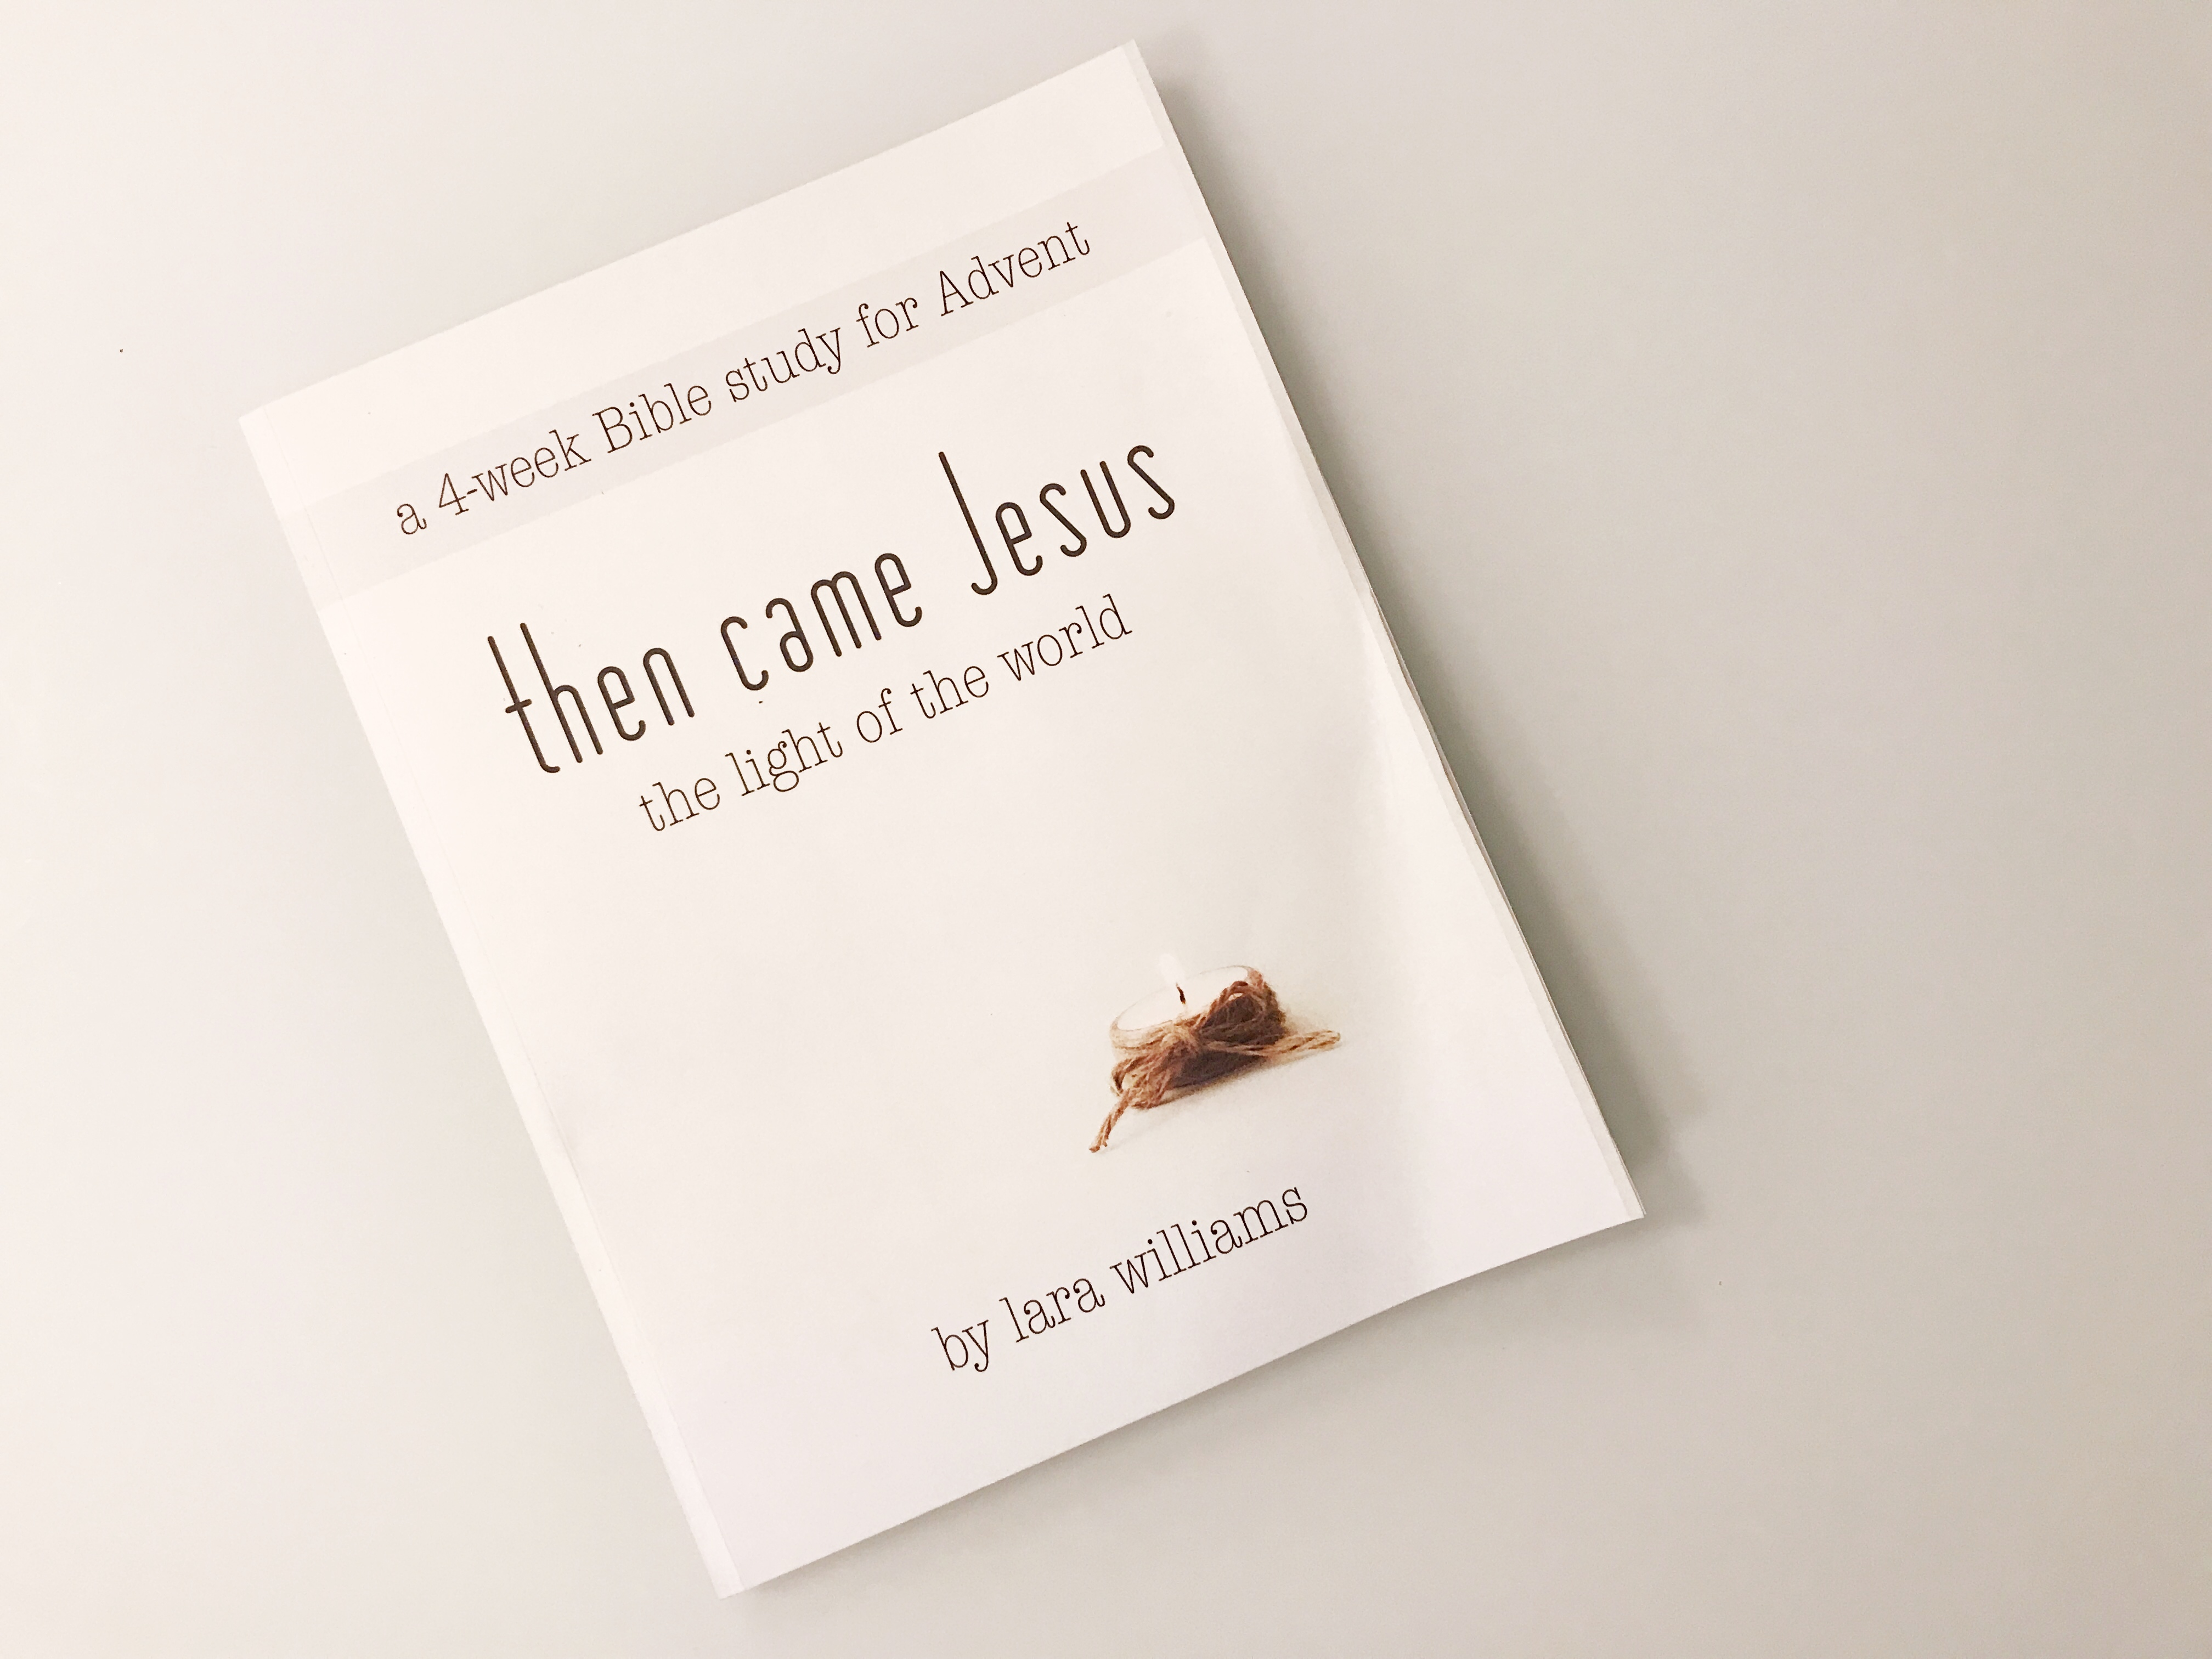 Then Came Jesus by Lara Williams